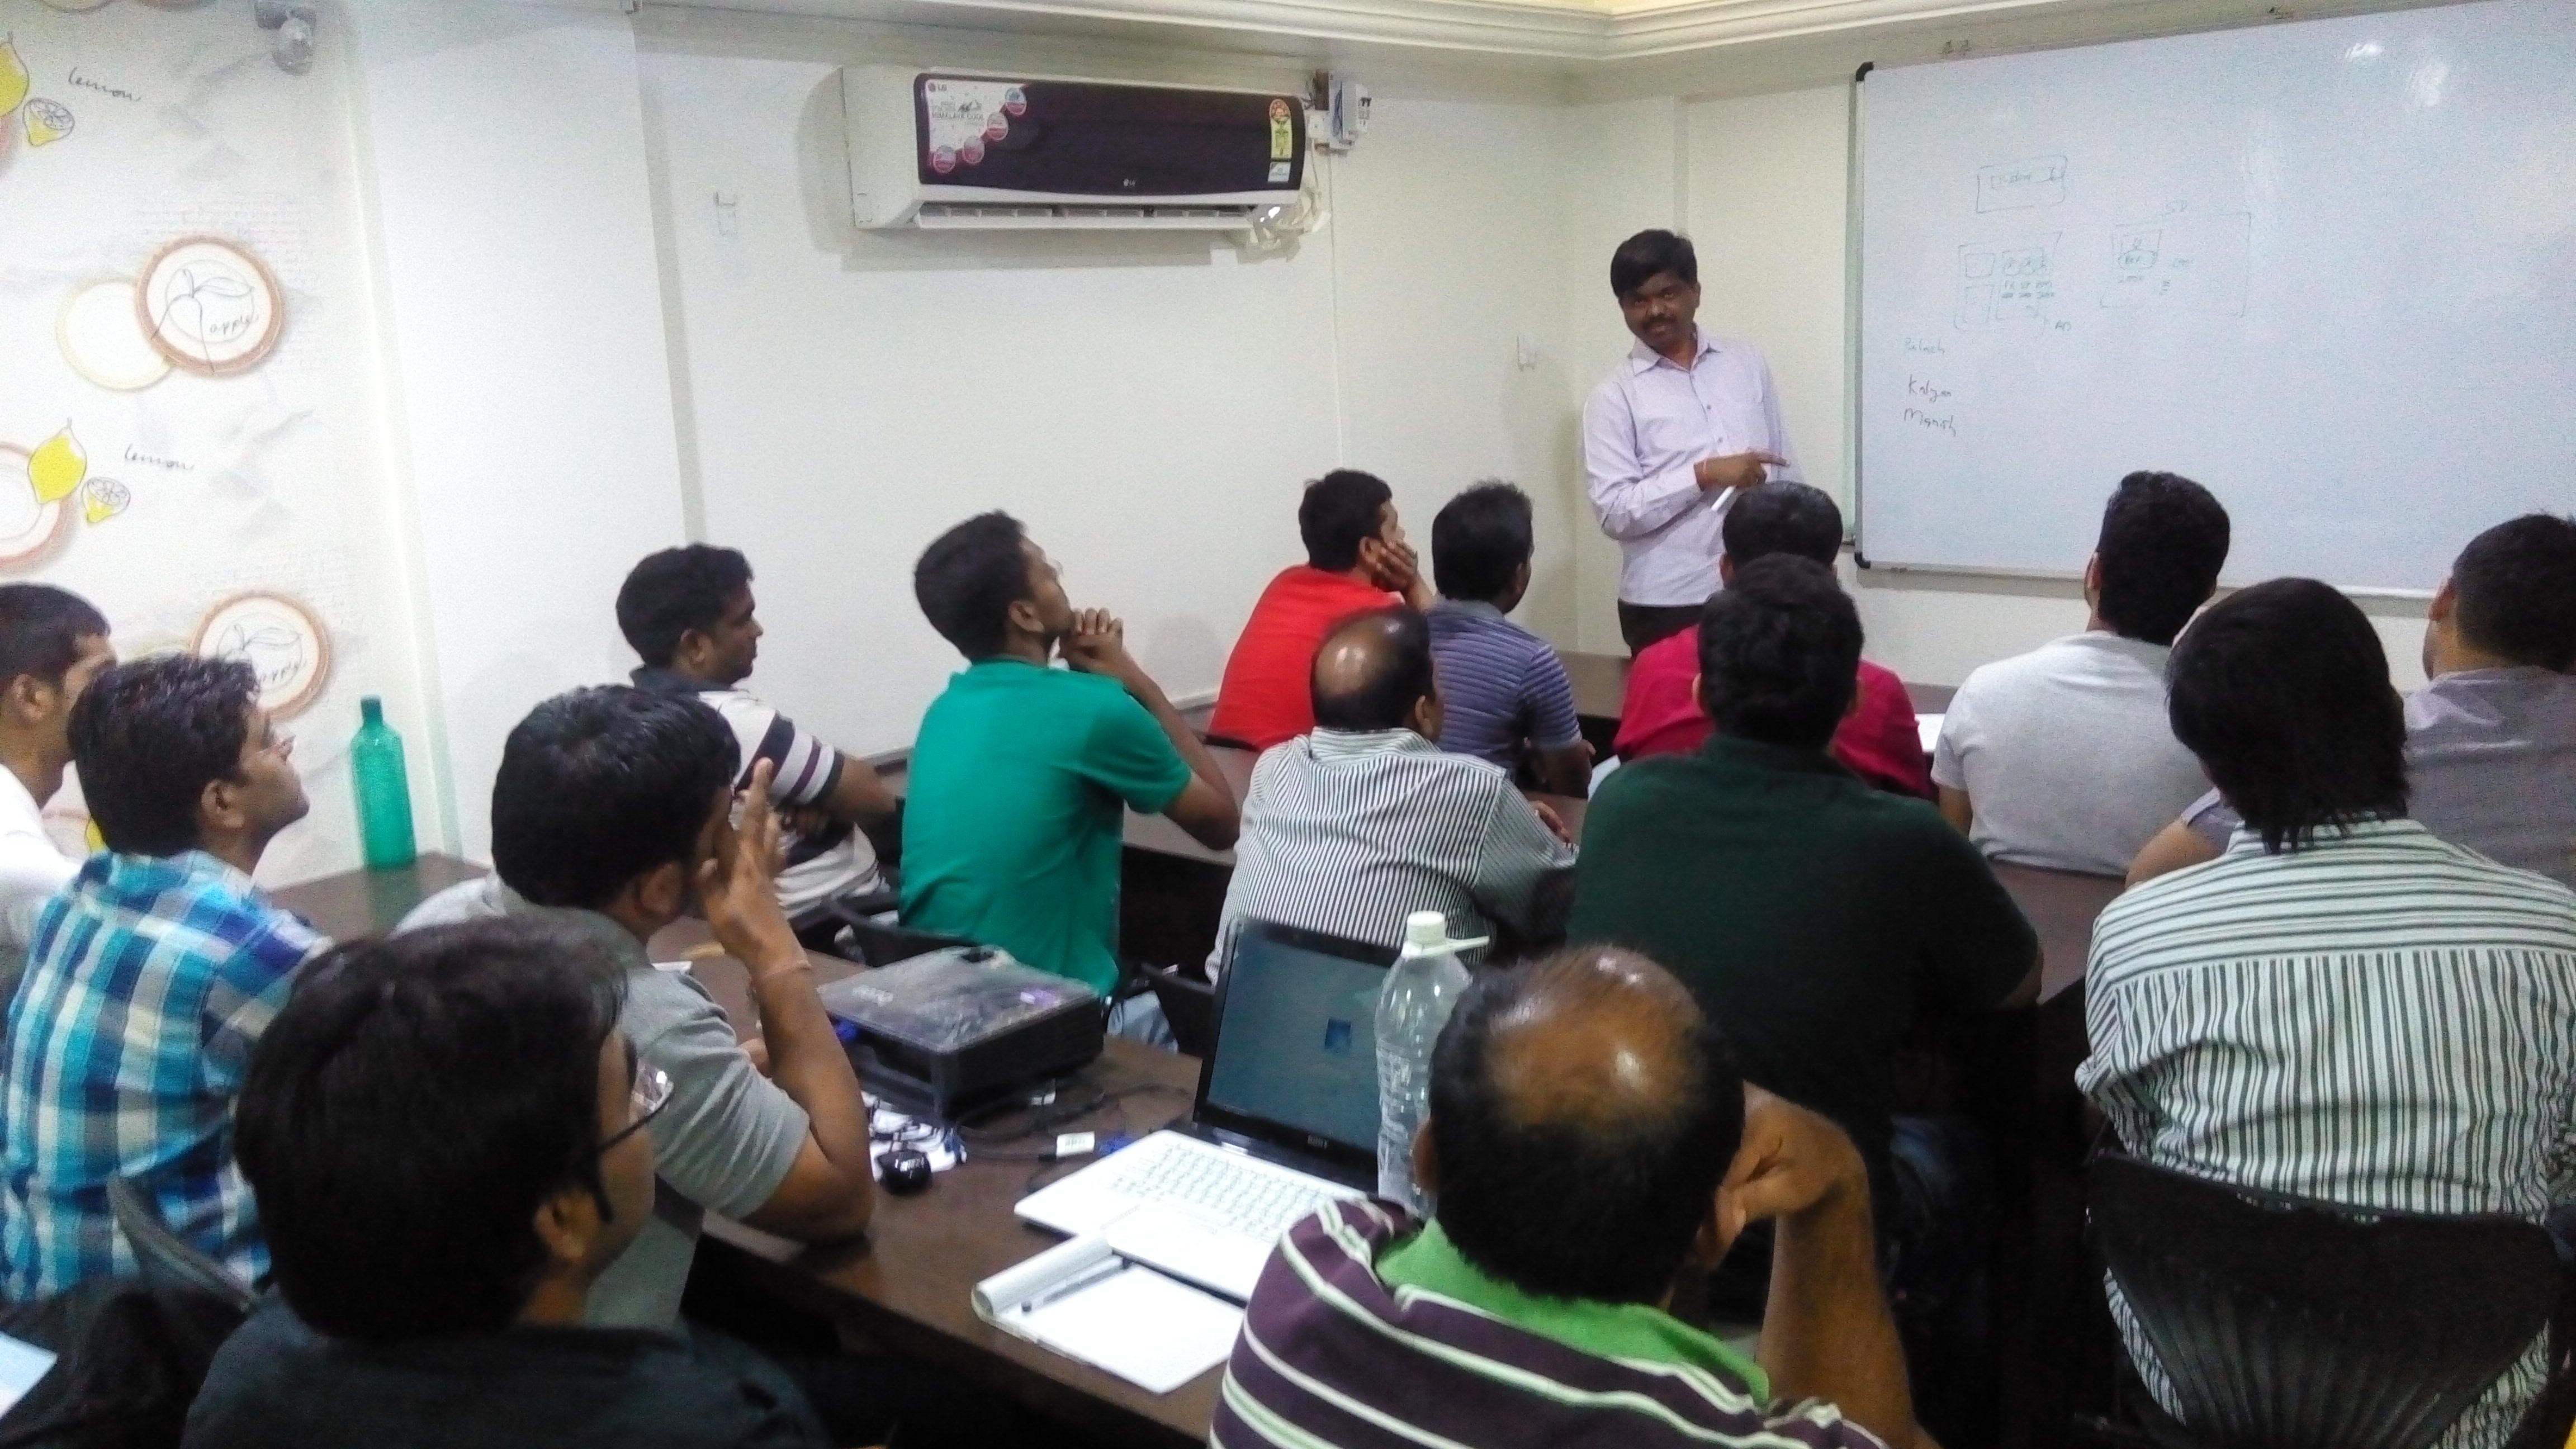 Redhat and linux training in pune etlhive pune redhat and linux training in pune etlhive pune xflitez Gallery